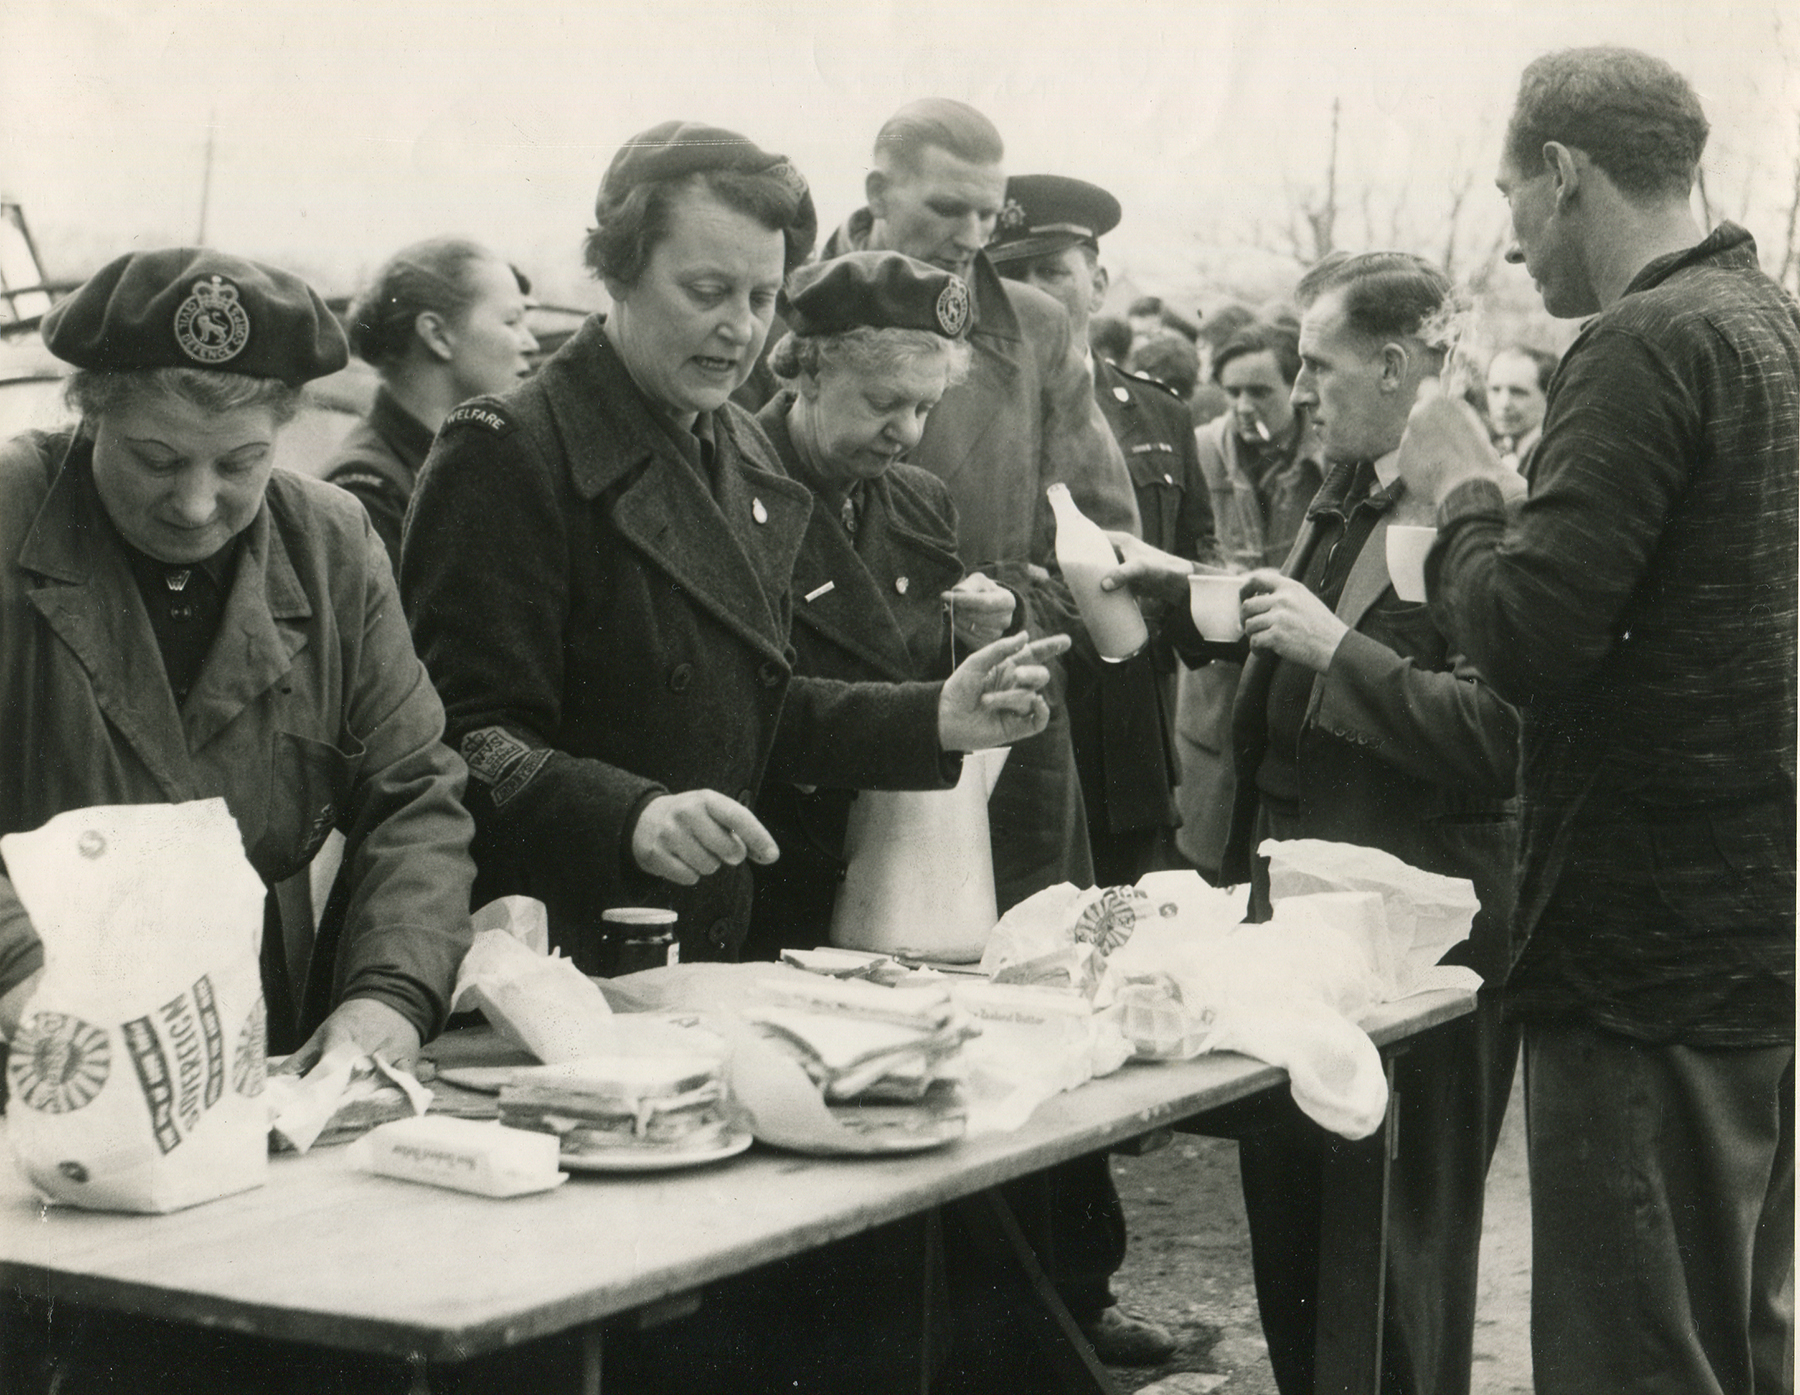 WVS ladies dispense refreshments